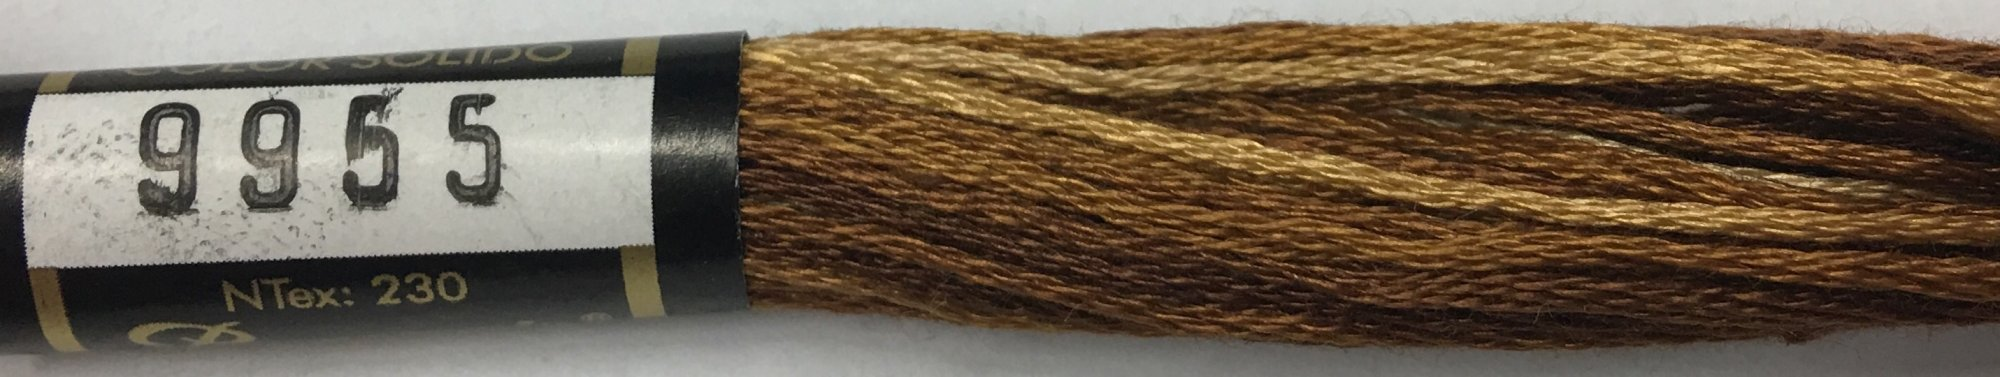 F9955 Presencia 100% Mercerized Finca Varigated Cotton 6 ply Embroidery Floss 8 meter skein